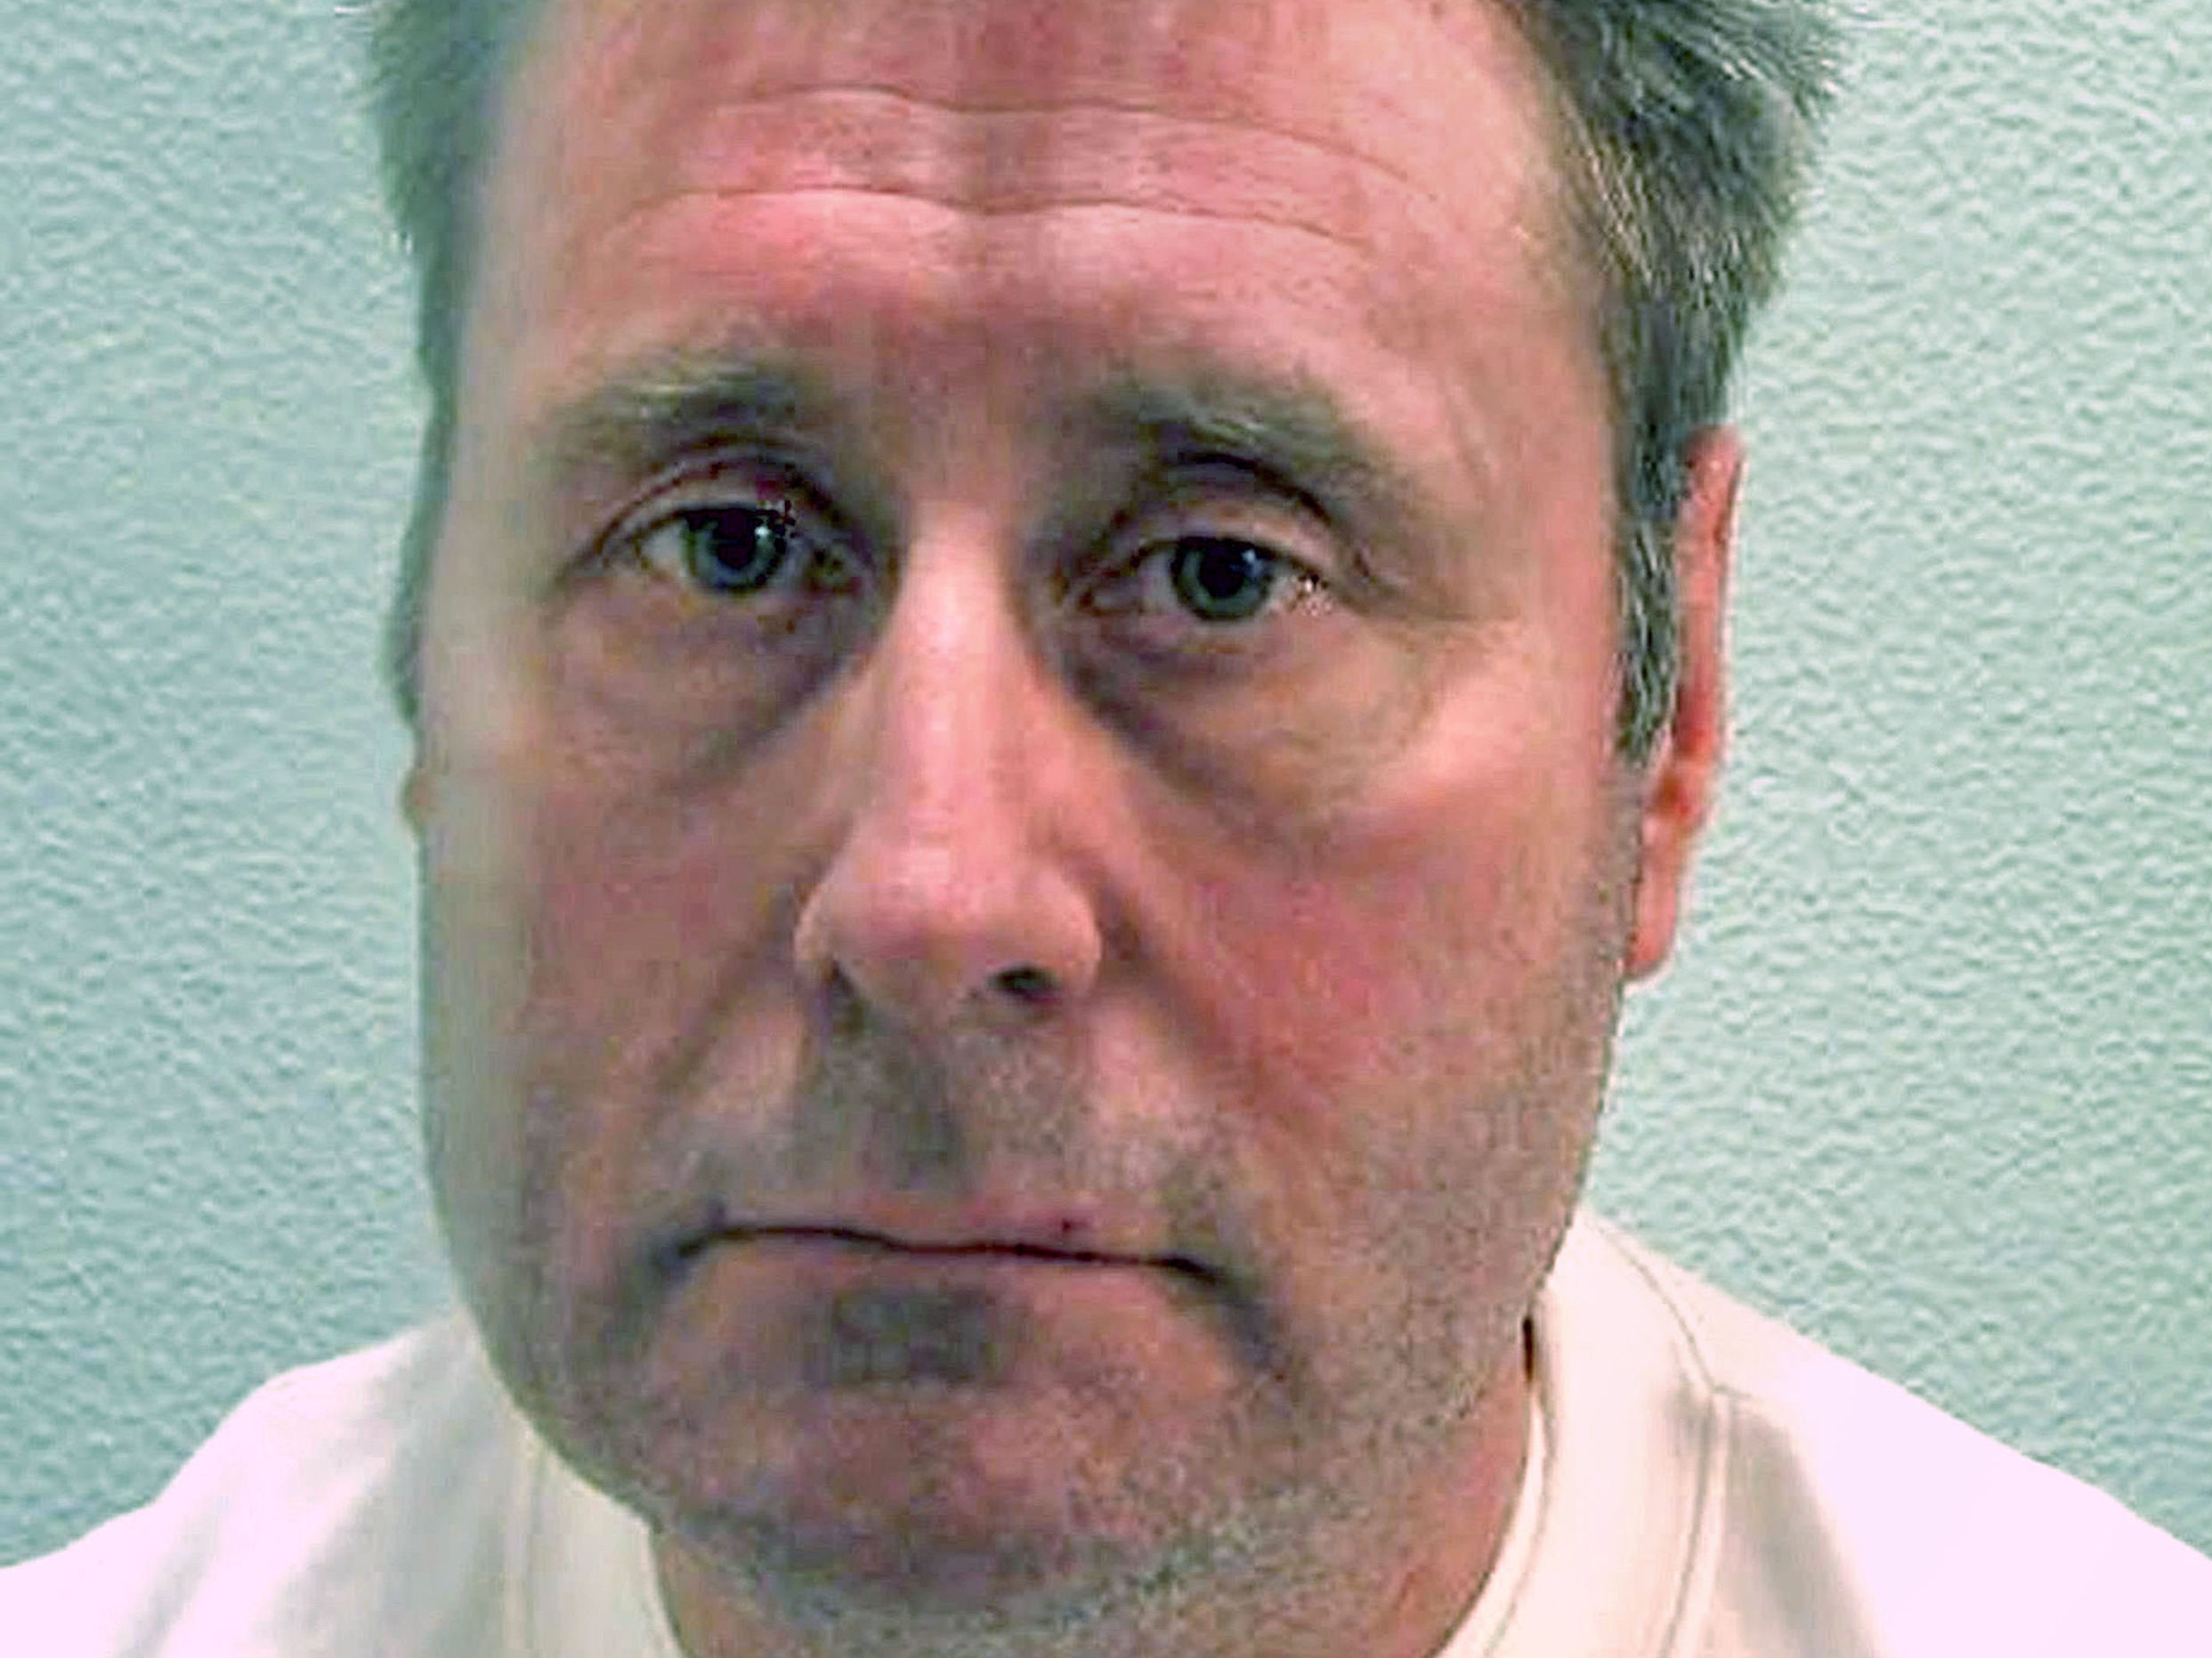 Sex attacker John Worboys 'moved to London ahead of release'